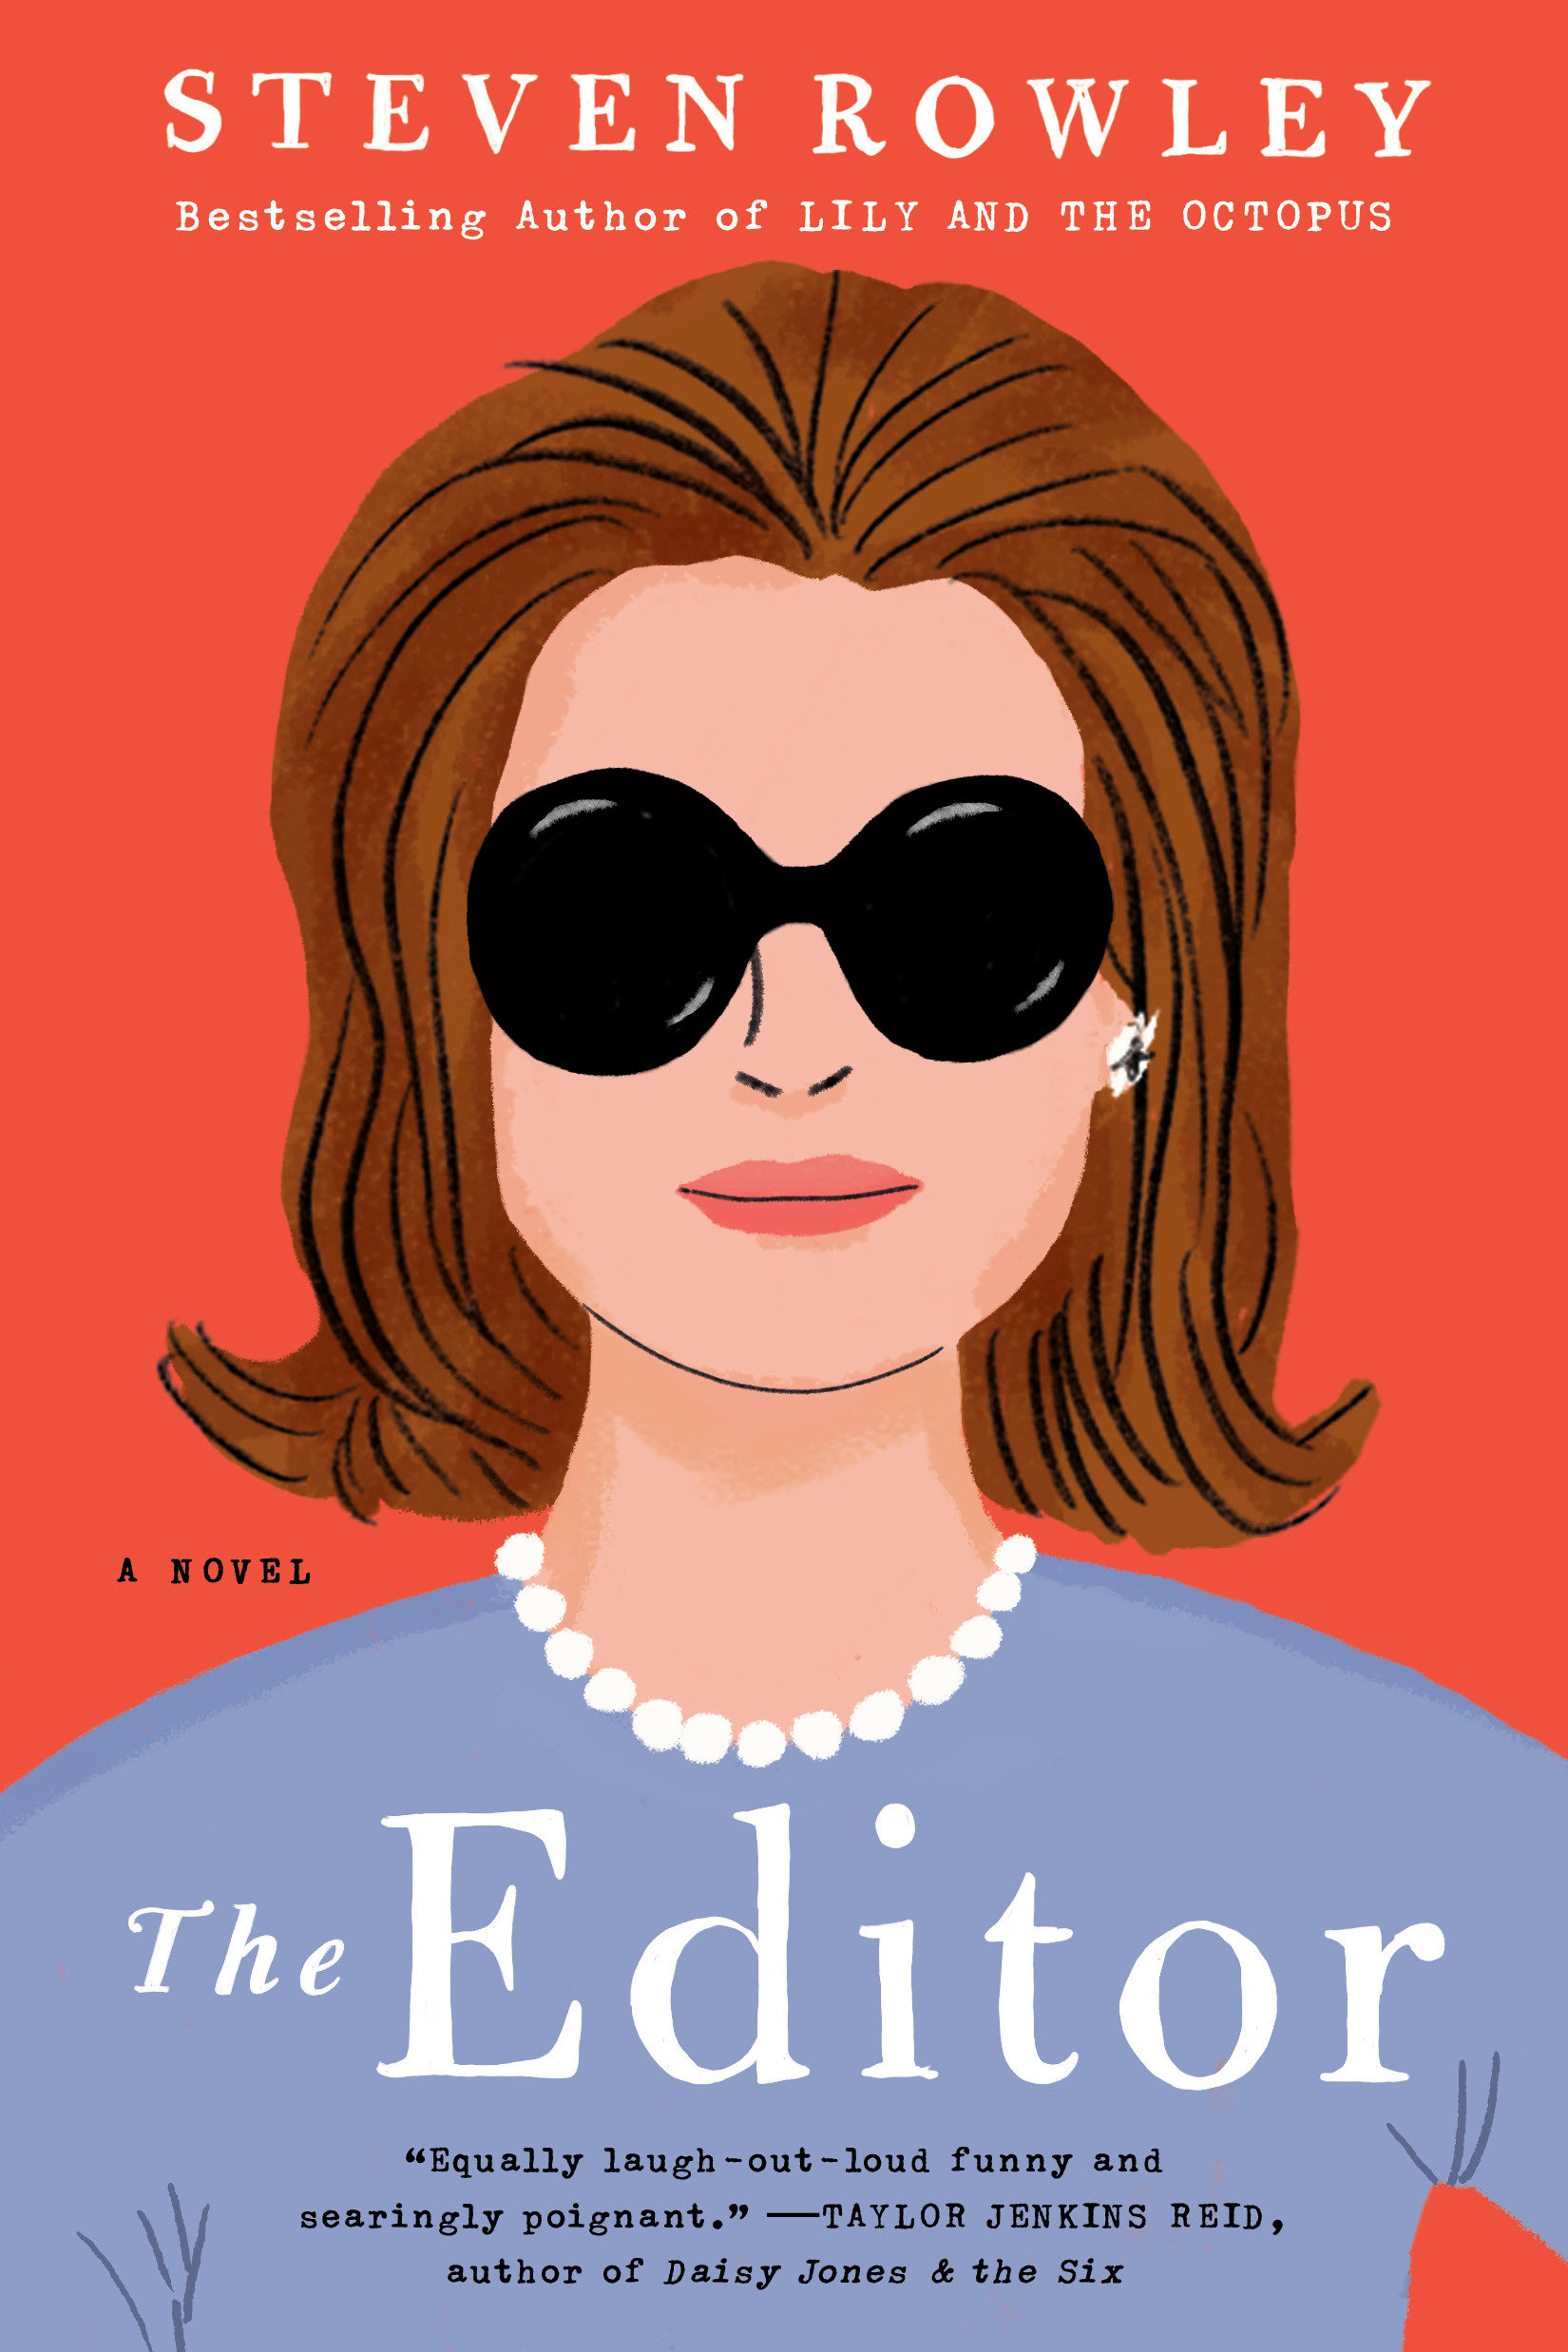 The editor cover image